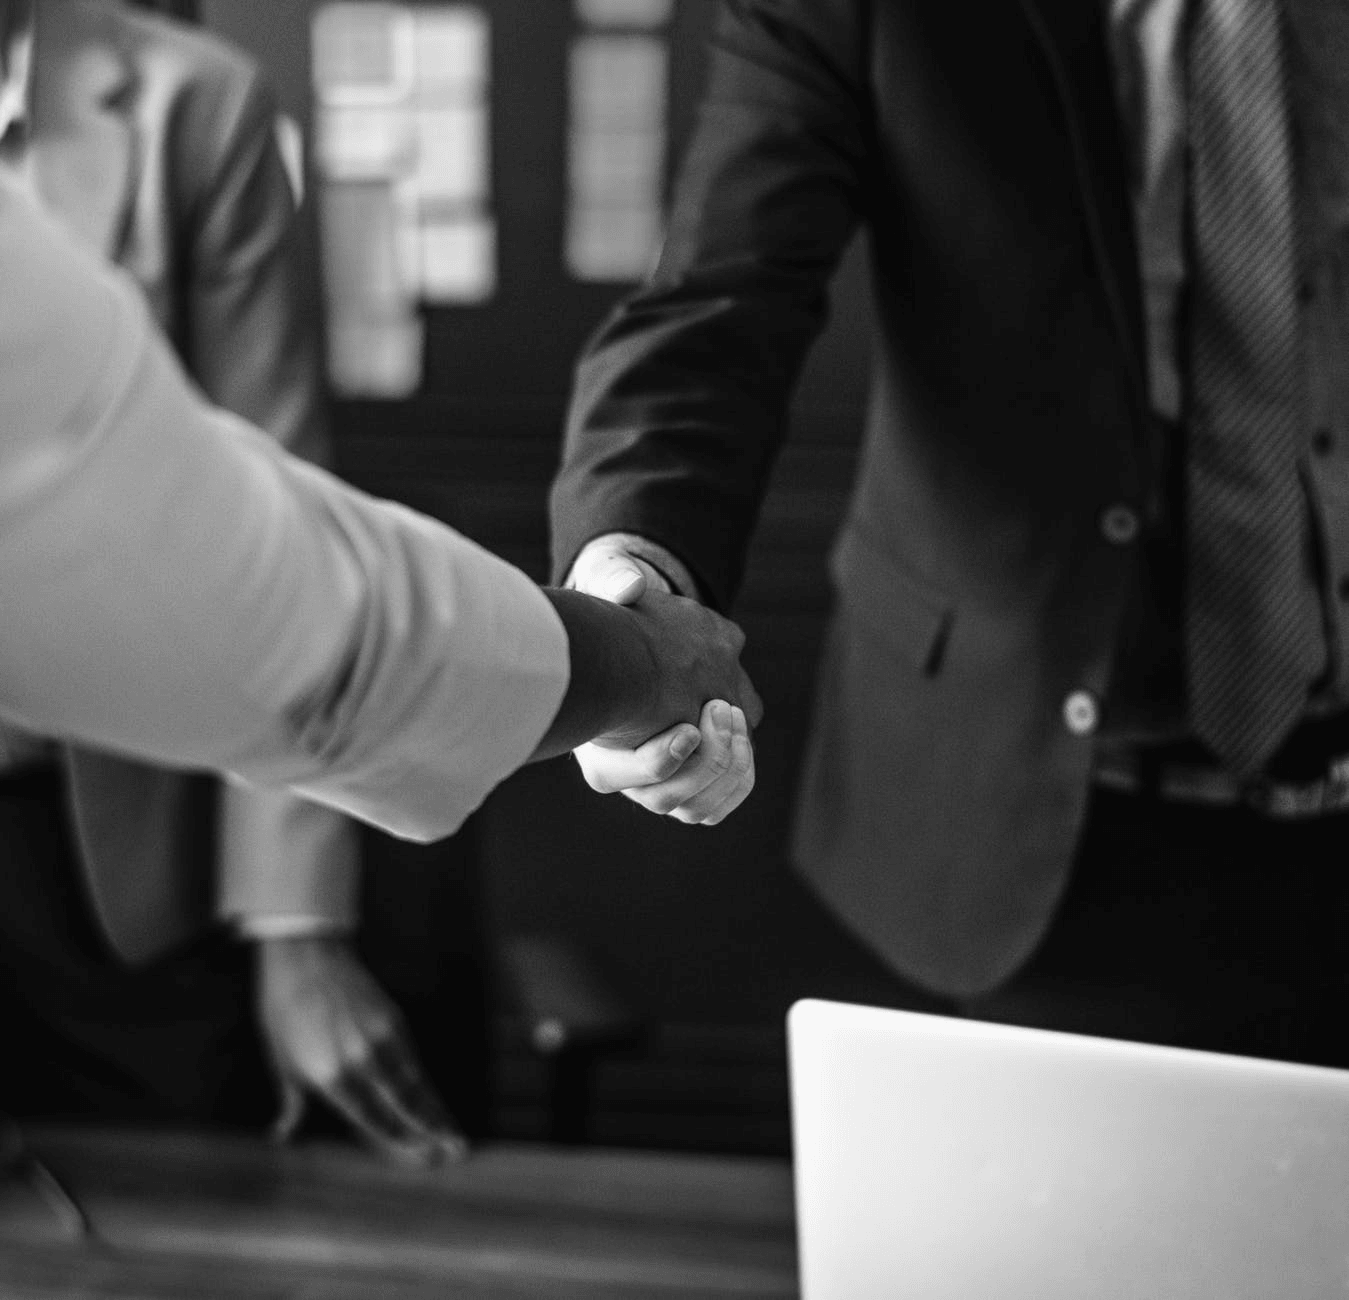 Black and white photo of two people shaking hands.